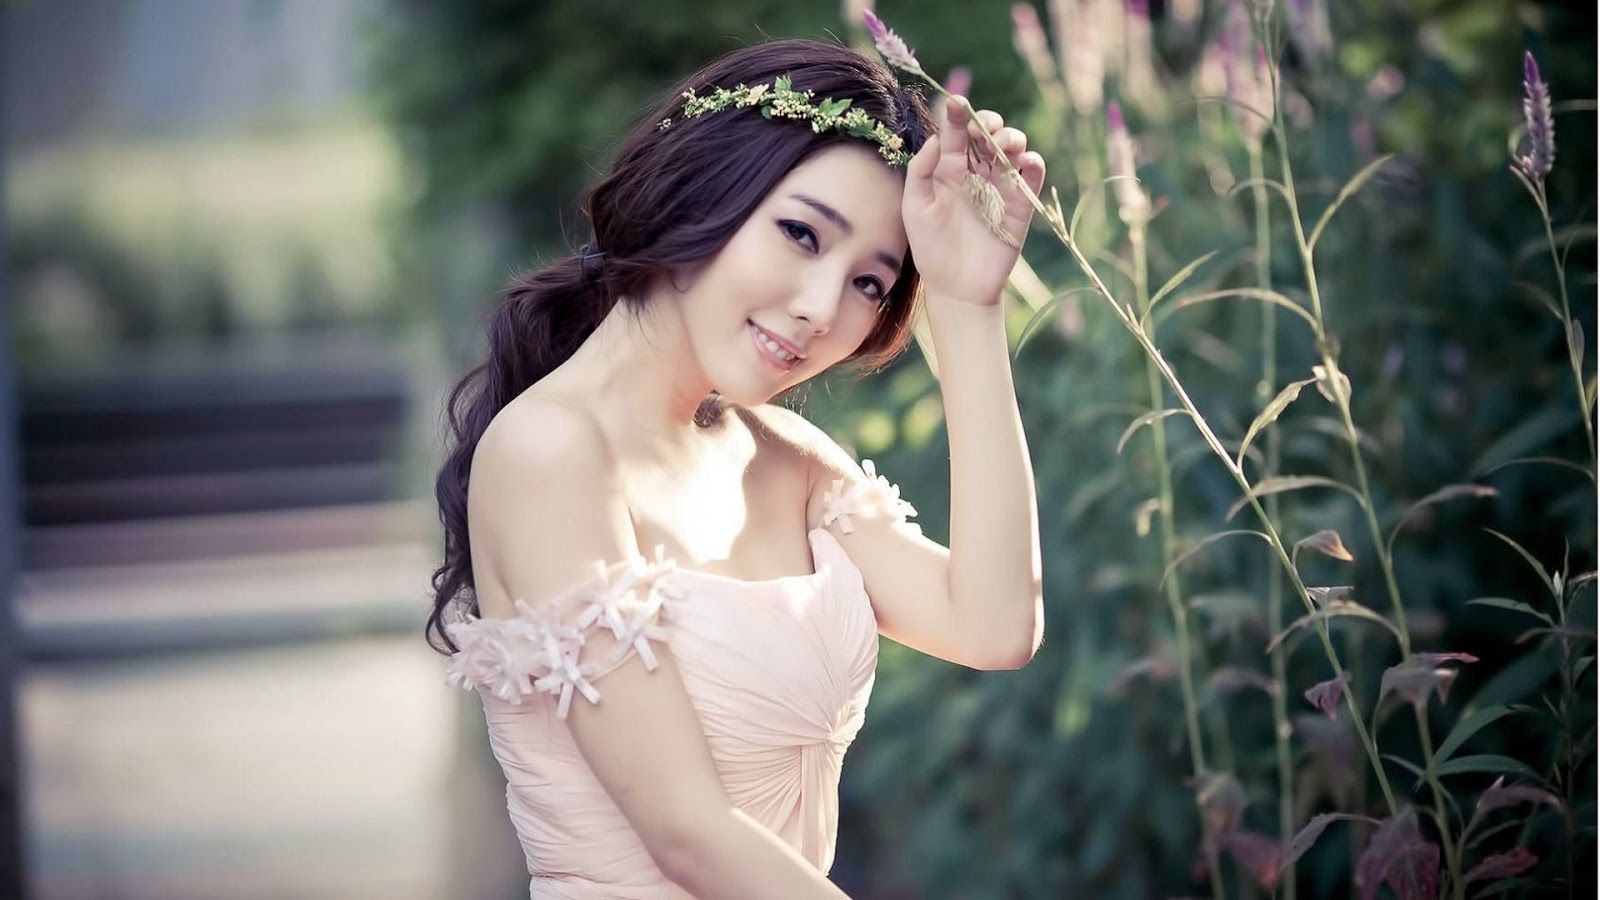 Beautiful girls with flowers wallpapers 3 whb beautiful girls with flowers wallpapers 3 whb beautifulgirlswithflowerswallpapers beautifulgirlswithflowers beautifulgirls babes hotgirls sexygirls izmirmasajfo